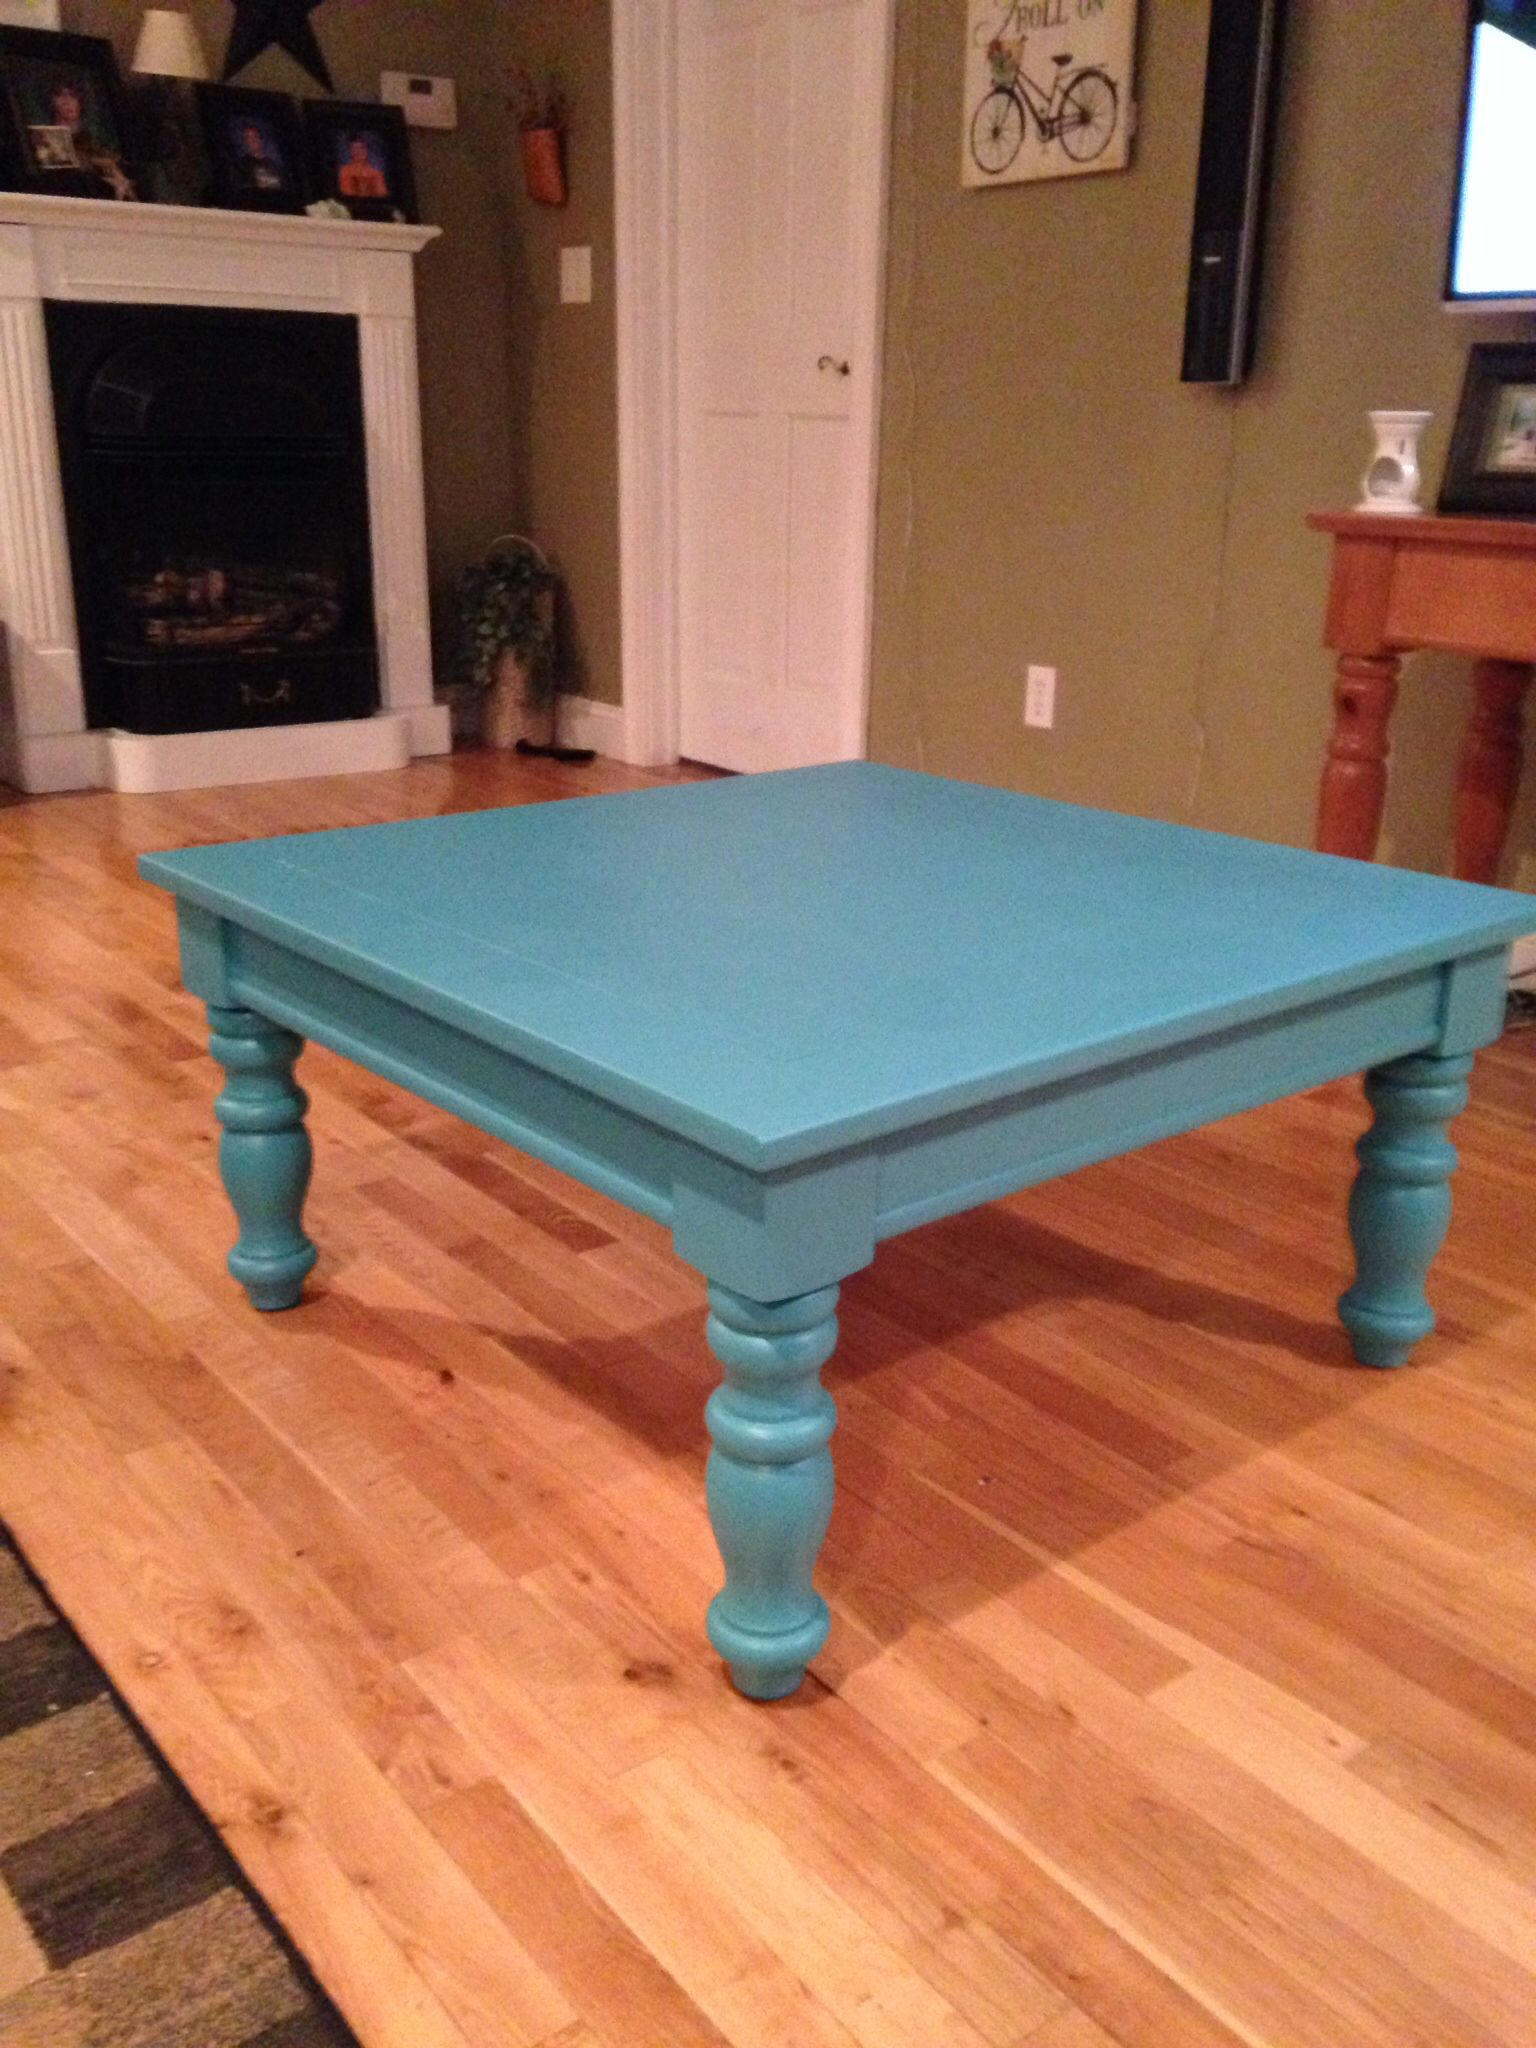 Broyhill Fontana table painted turquoise for a beachy look